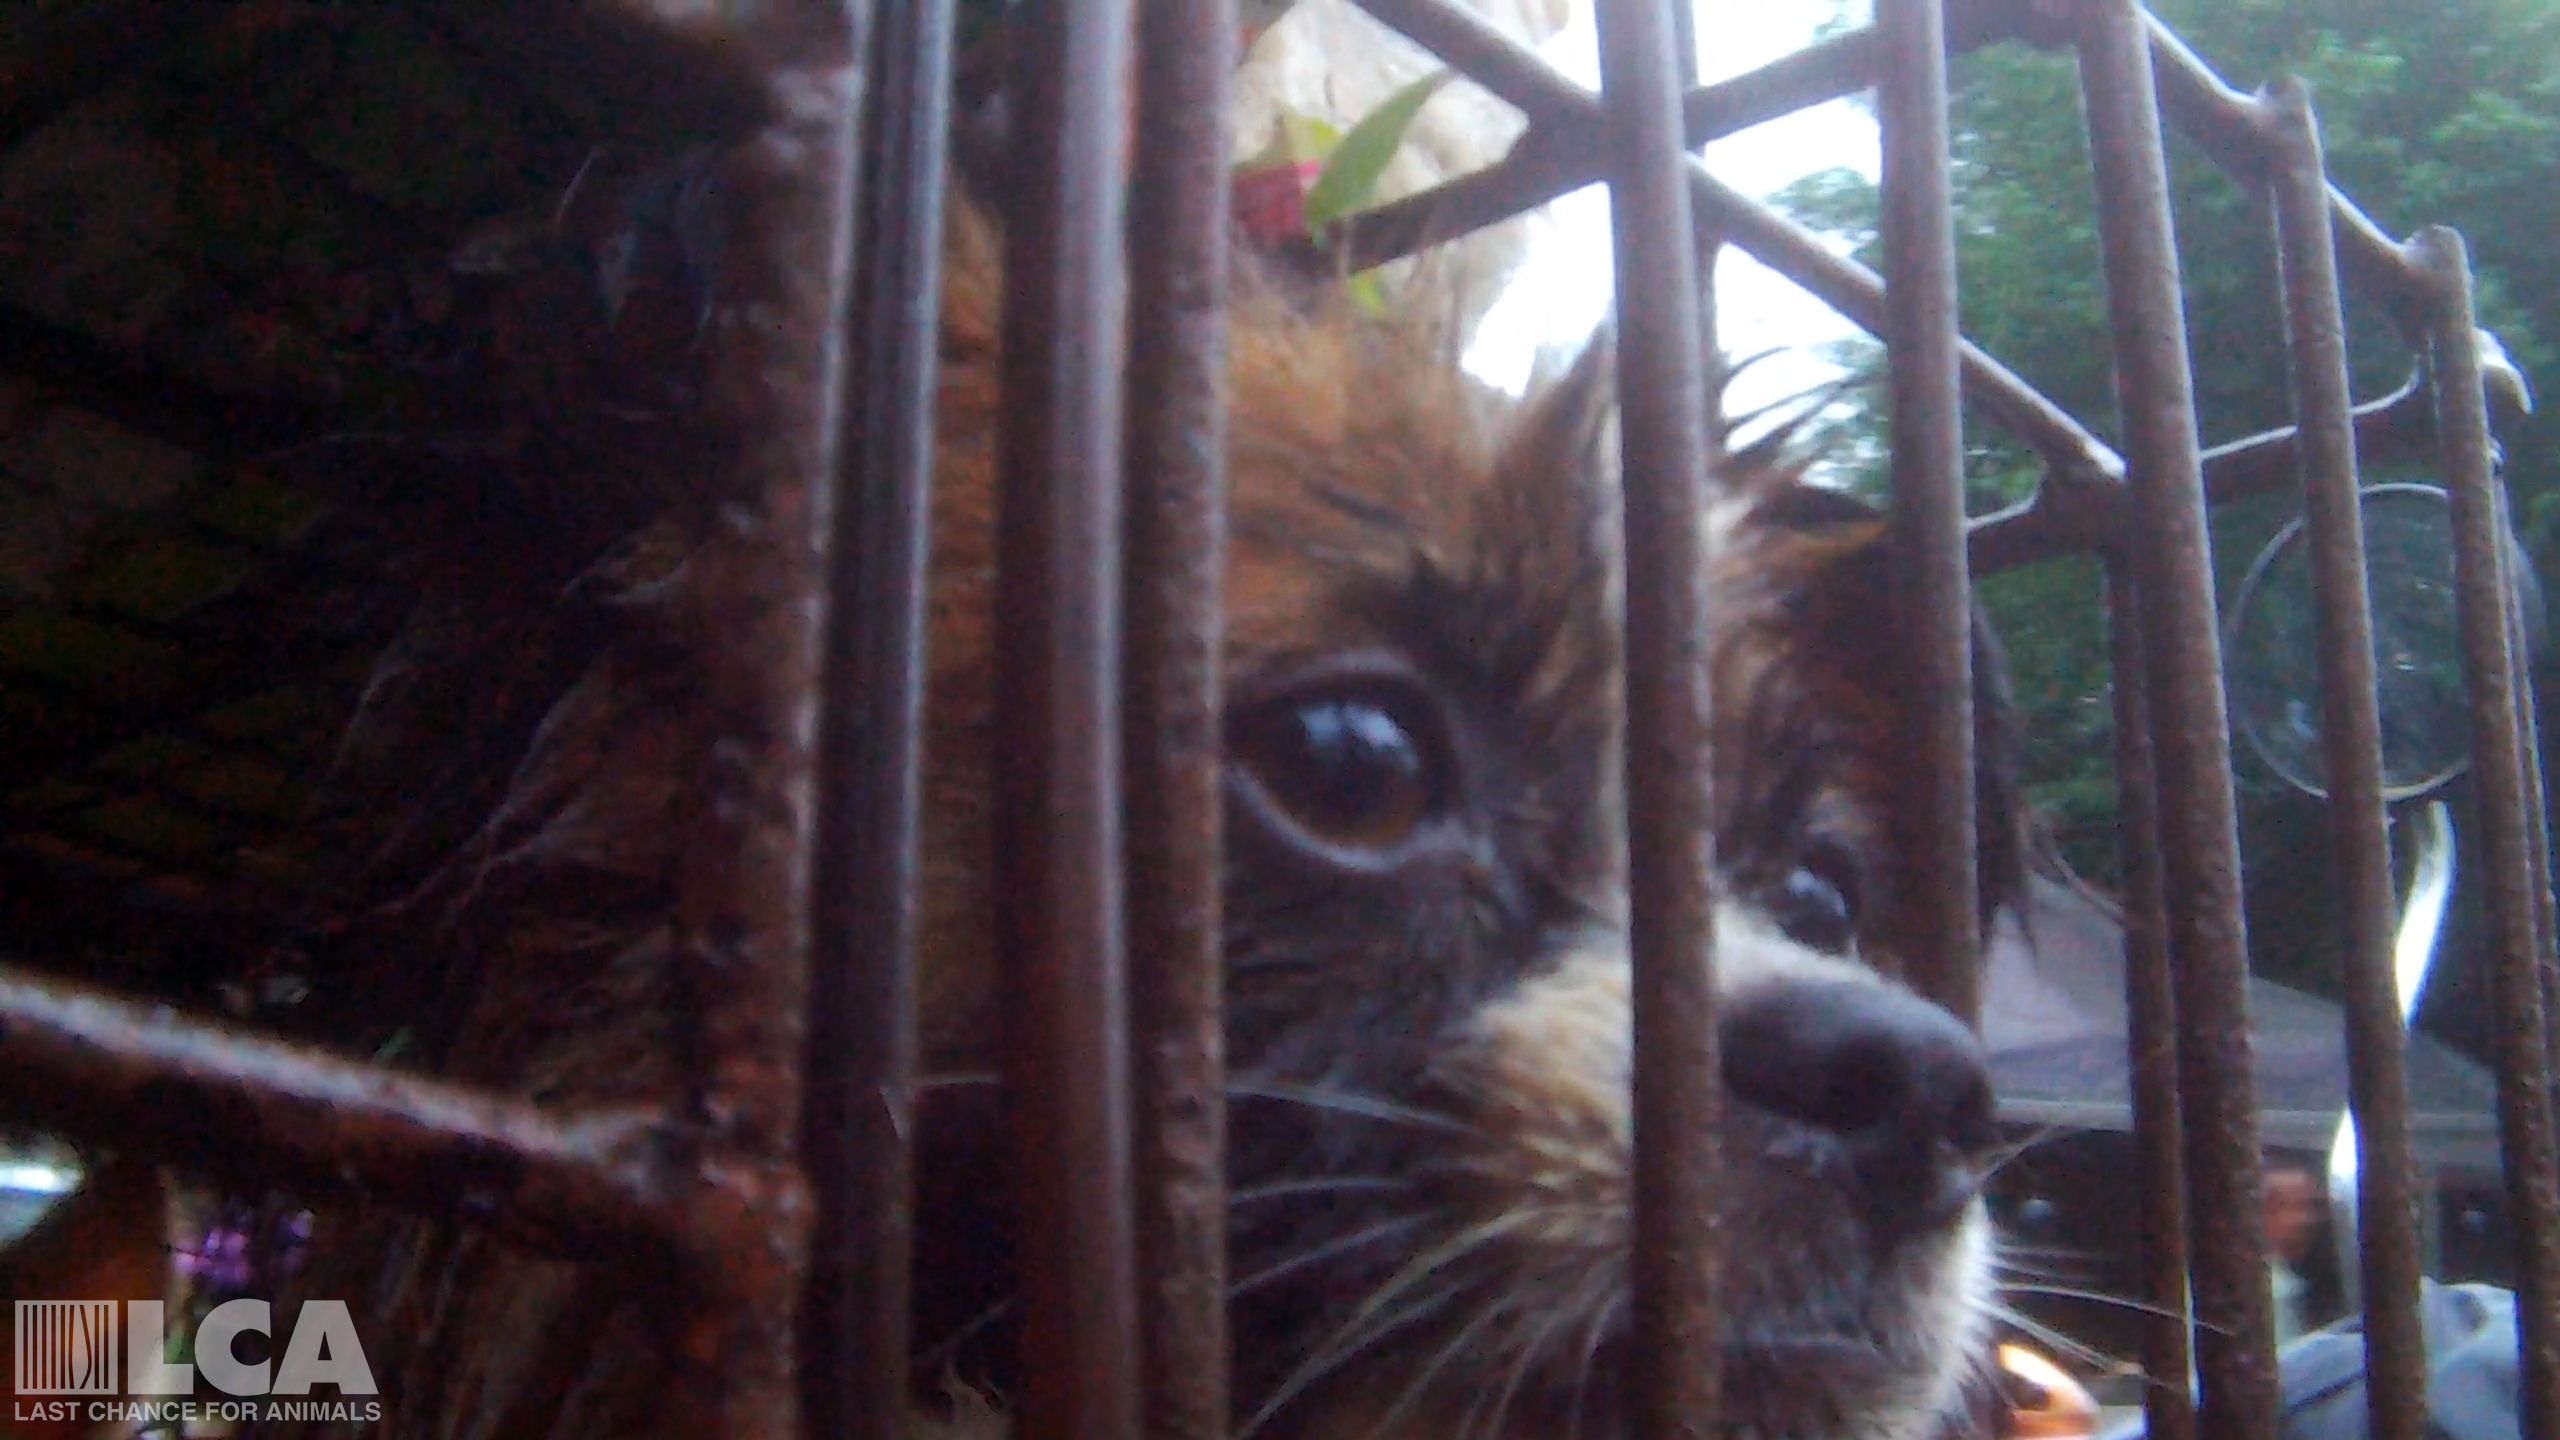 Sign Now to Stop Dog Meat in China!